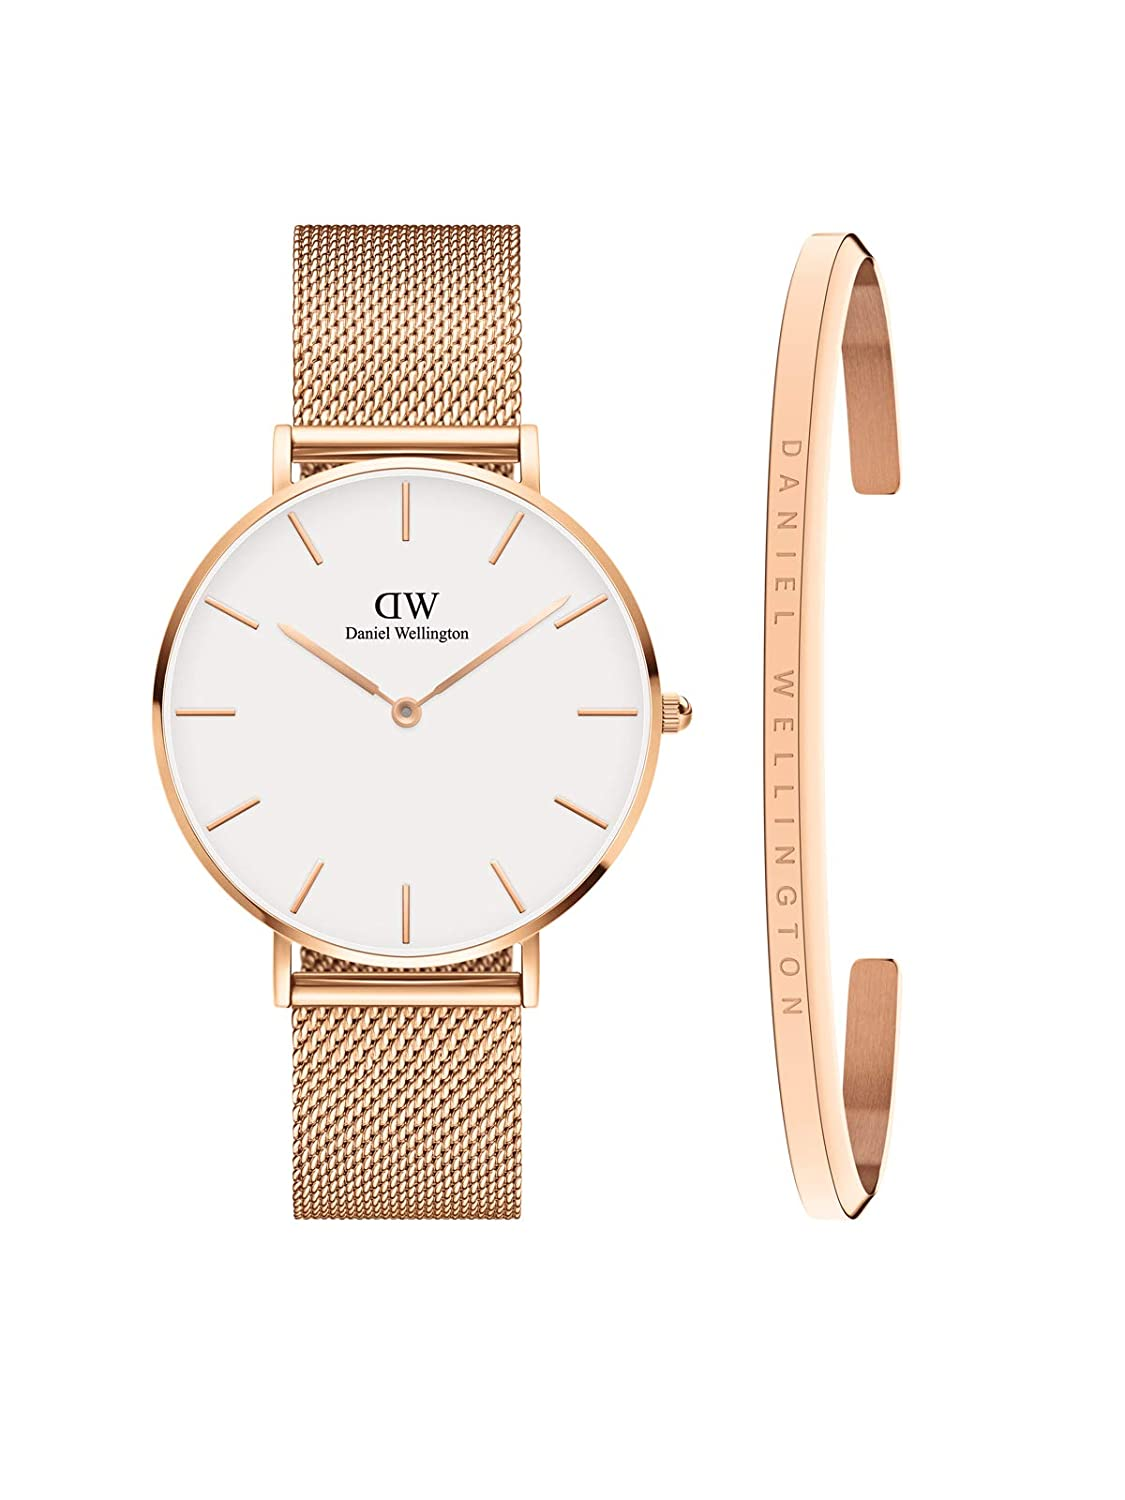 dong ho daniel wellington chinh hang